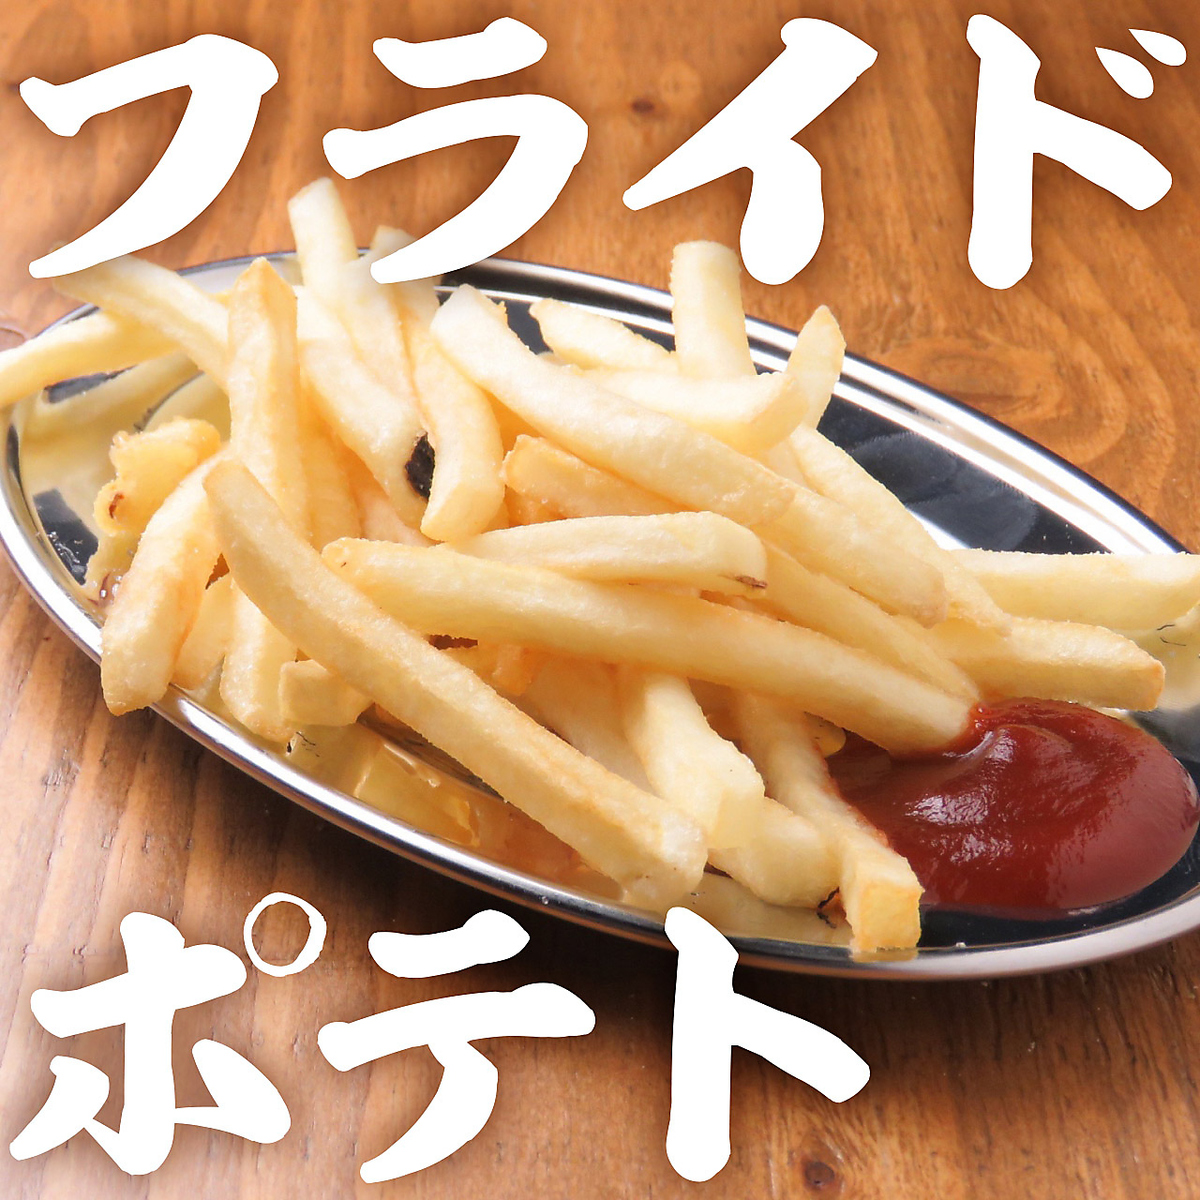 <Fried items> French fries